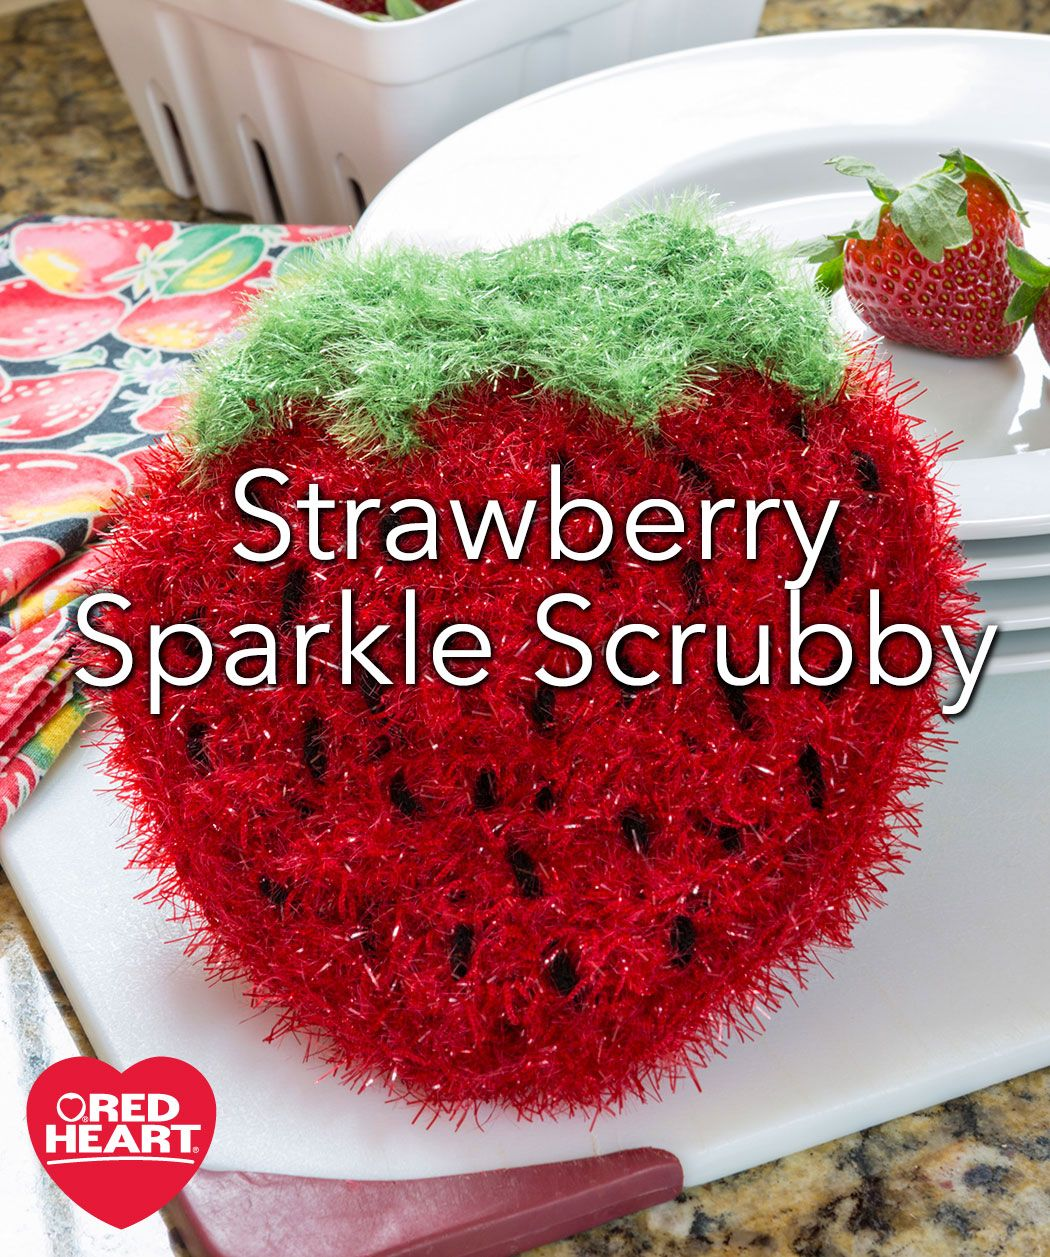 Strawberry sparkle scrubby free crochet pattern in red heart strawberry sparkle scrubby free crochet pattern in red heart scrubby sparkle yarn since this scrubby bankloansurffo Gallery